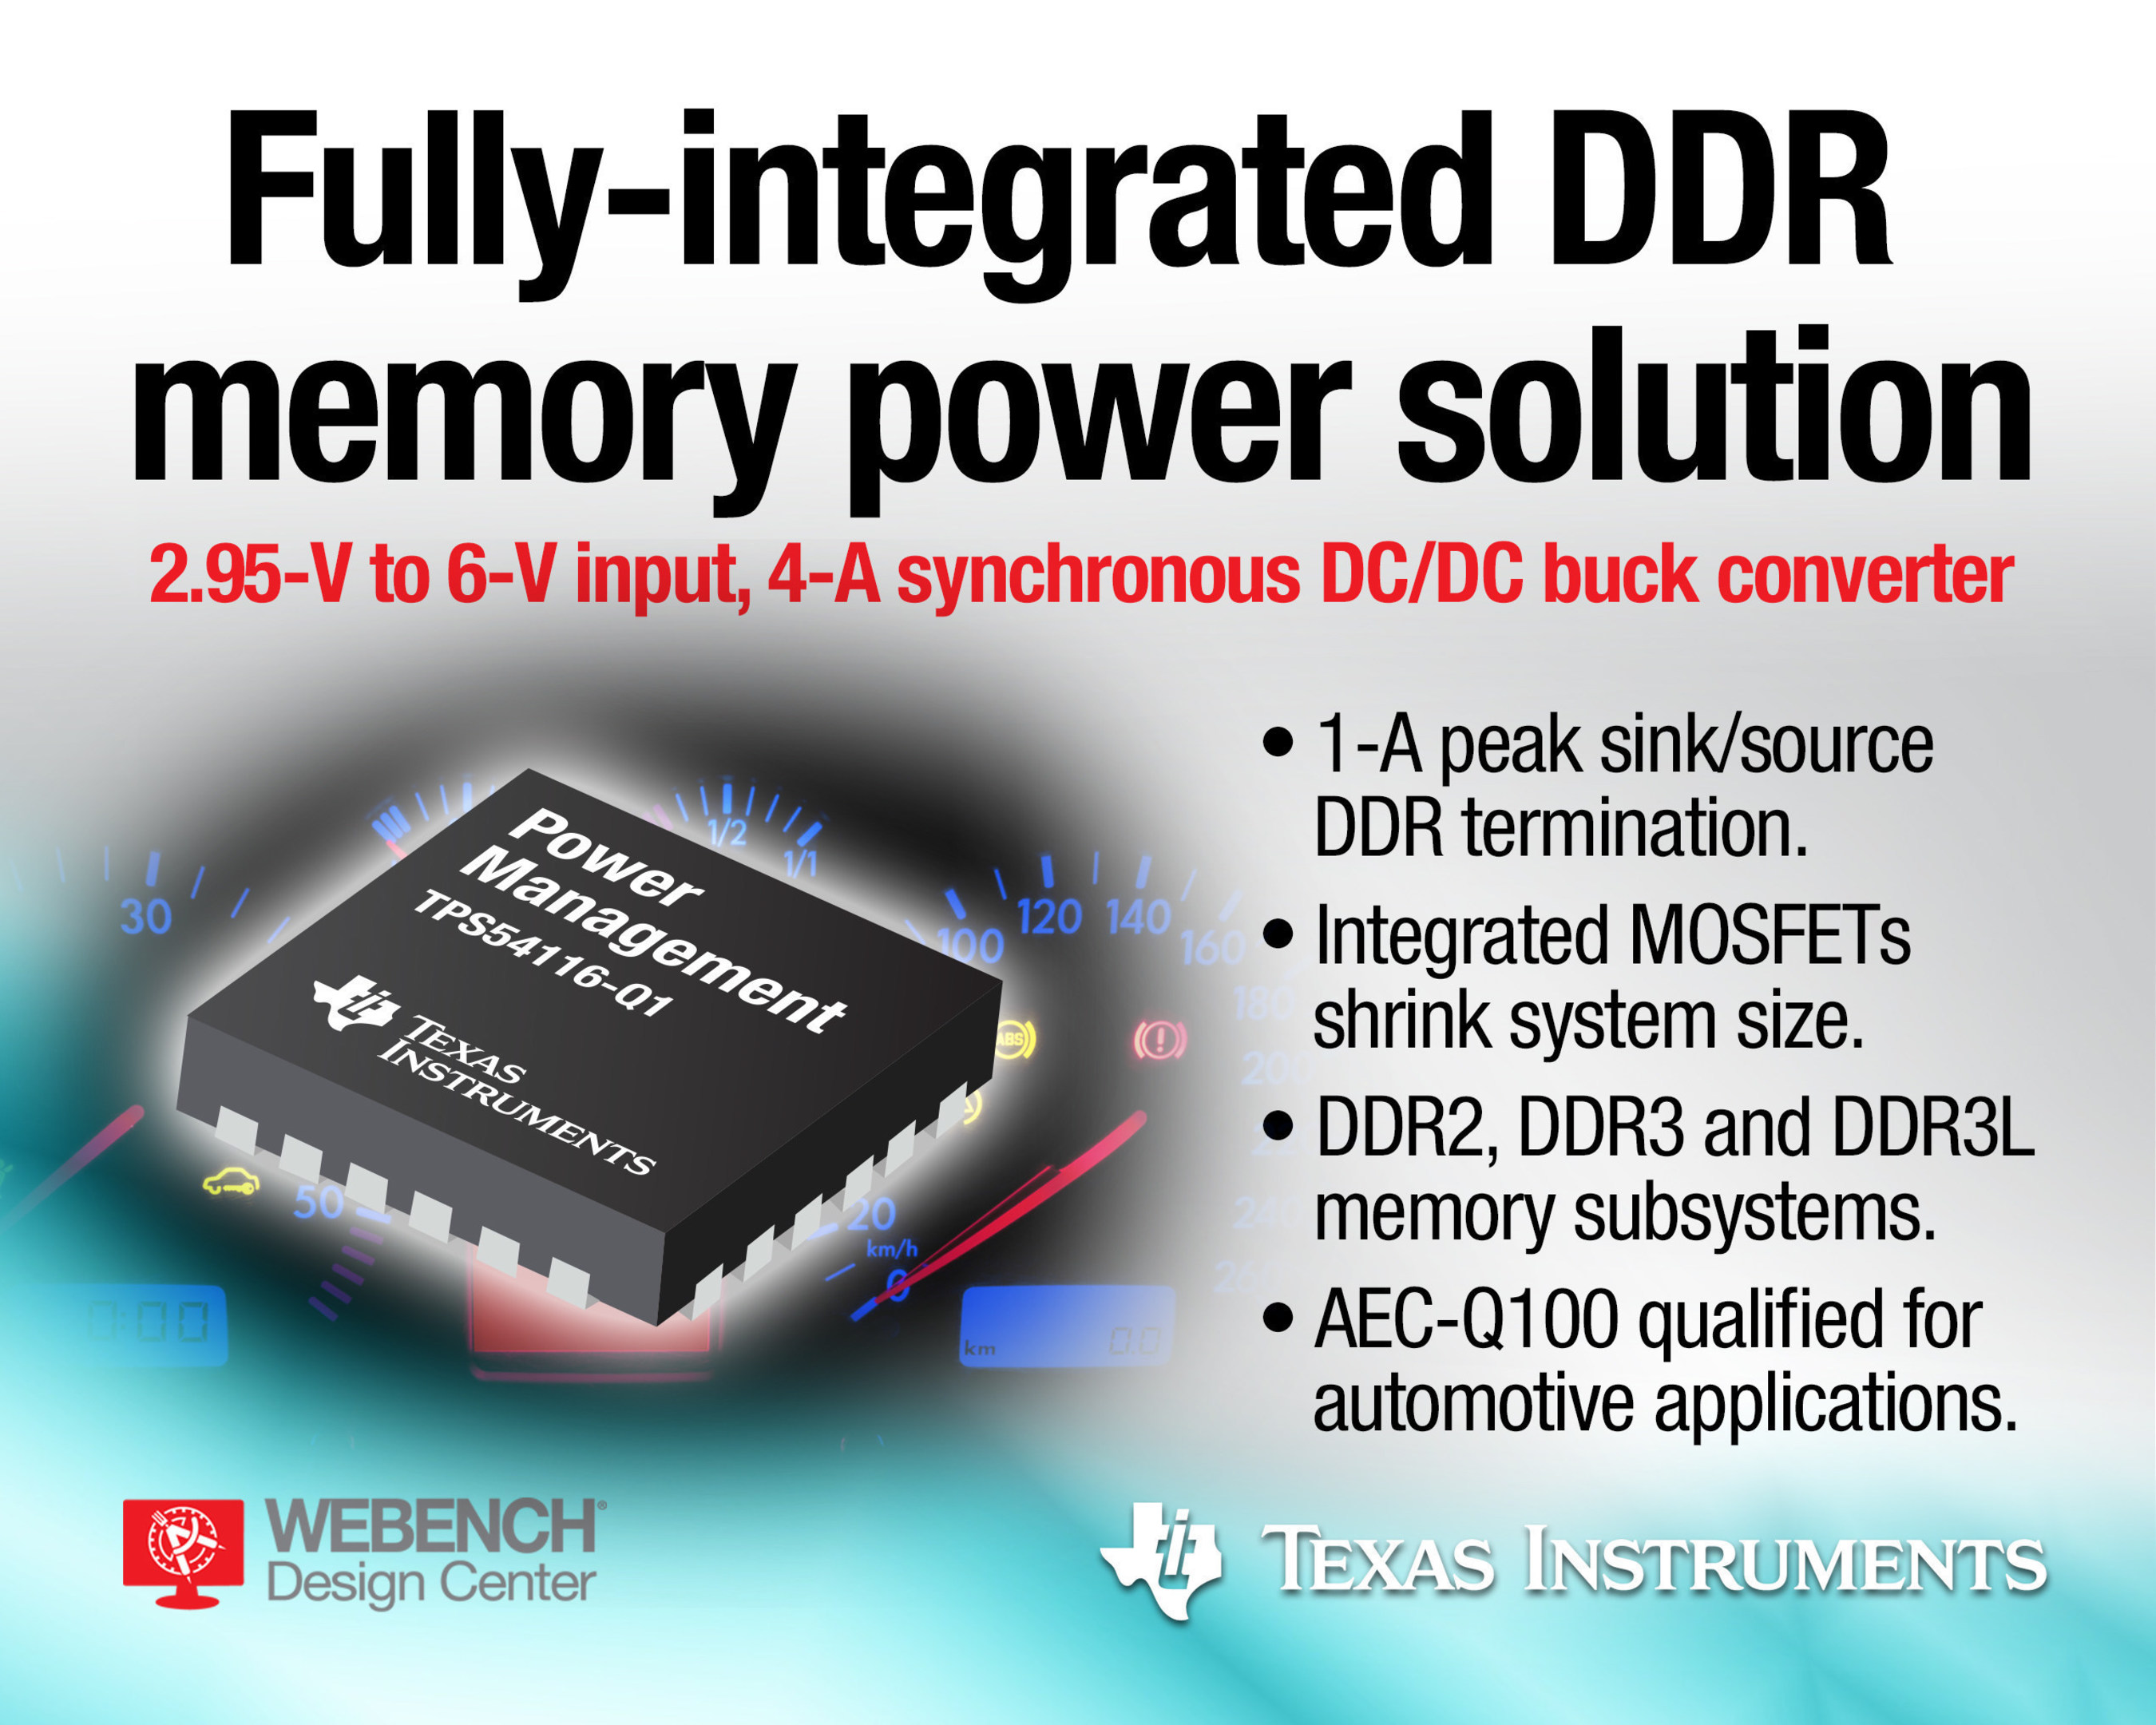 The TPS54116-Q1 DC/DC buck converter from Texas Instruments is a 2.95-V to 6-V input, 4-A synchronous step-down converter with a 1-A peak sink/source DDR termination and buffered reference that reduces system size by up to 50 percent compared to discrete implementations.